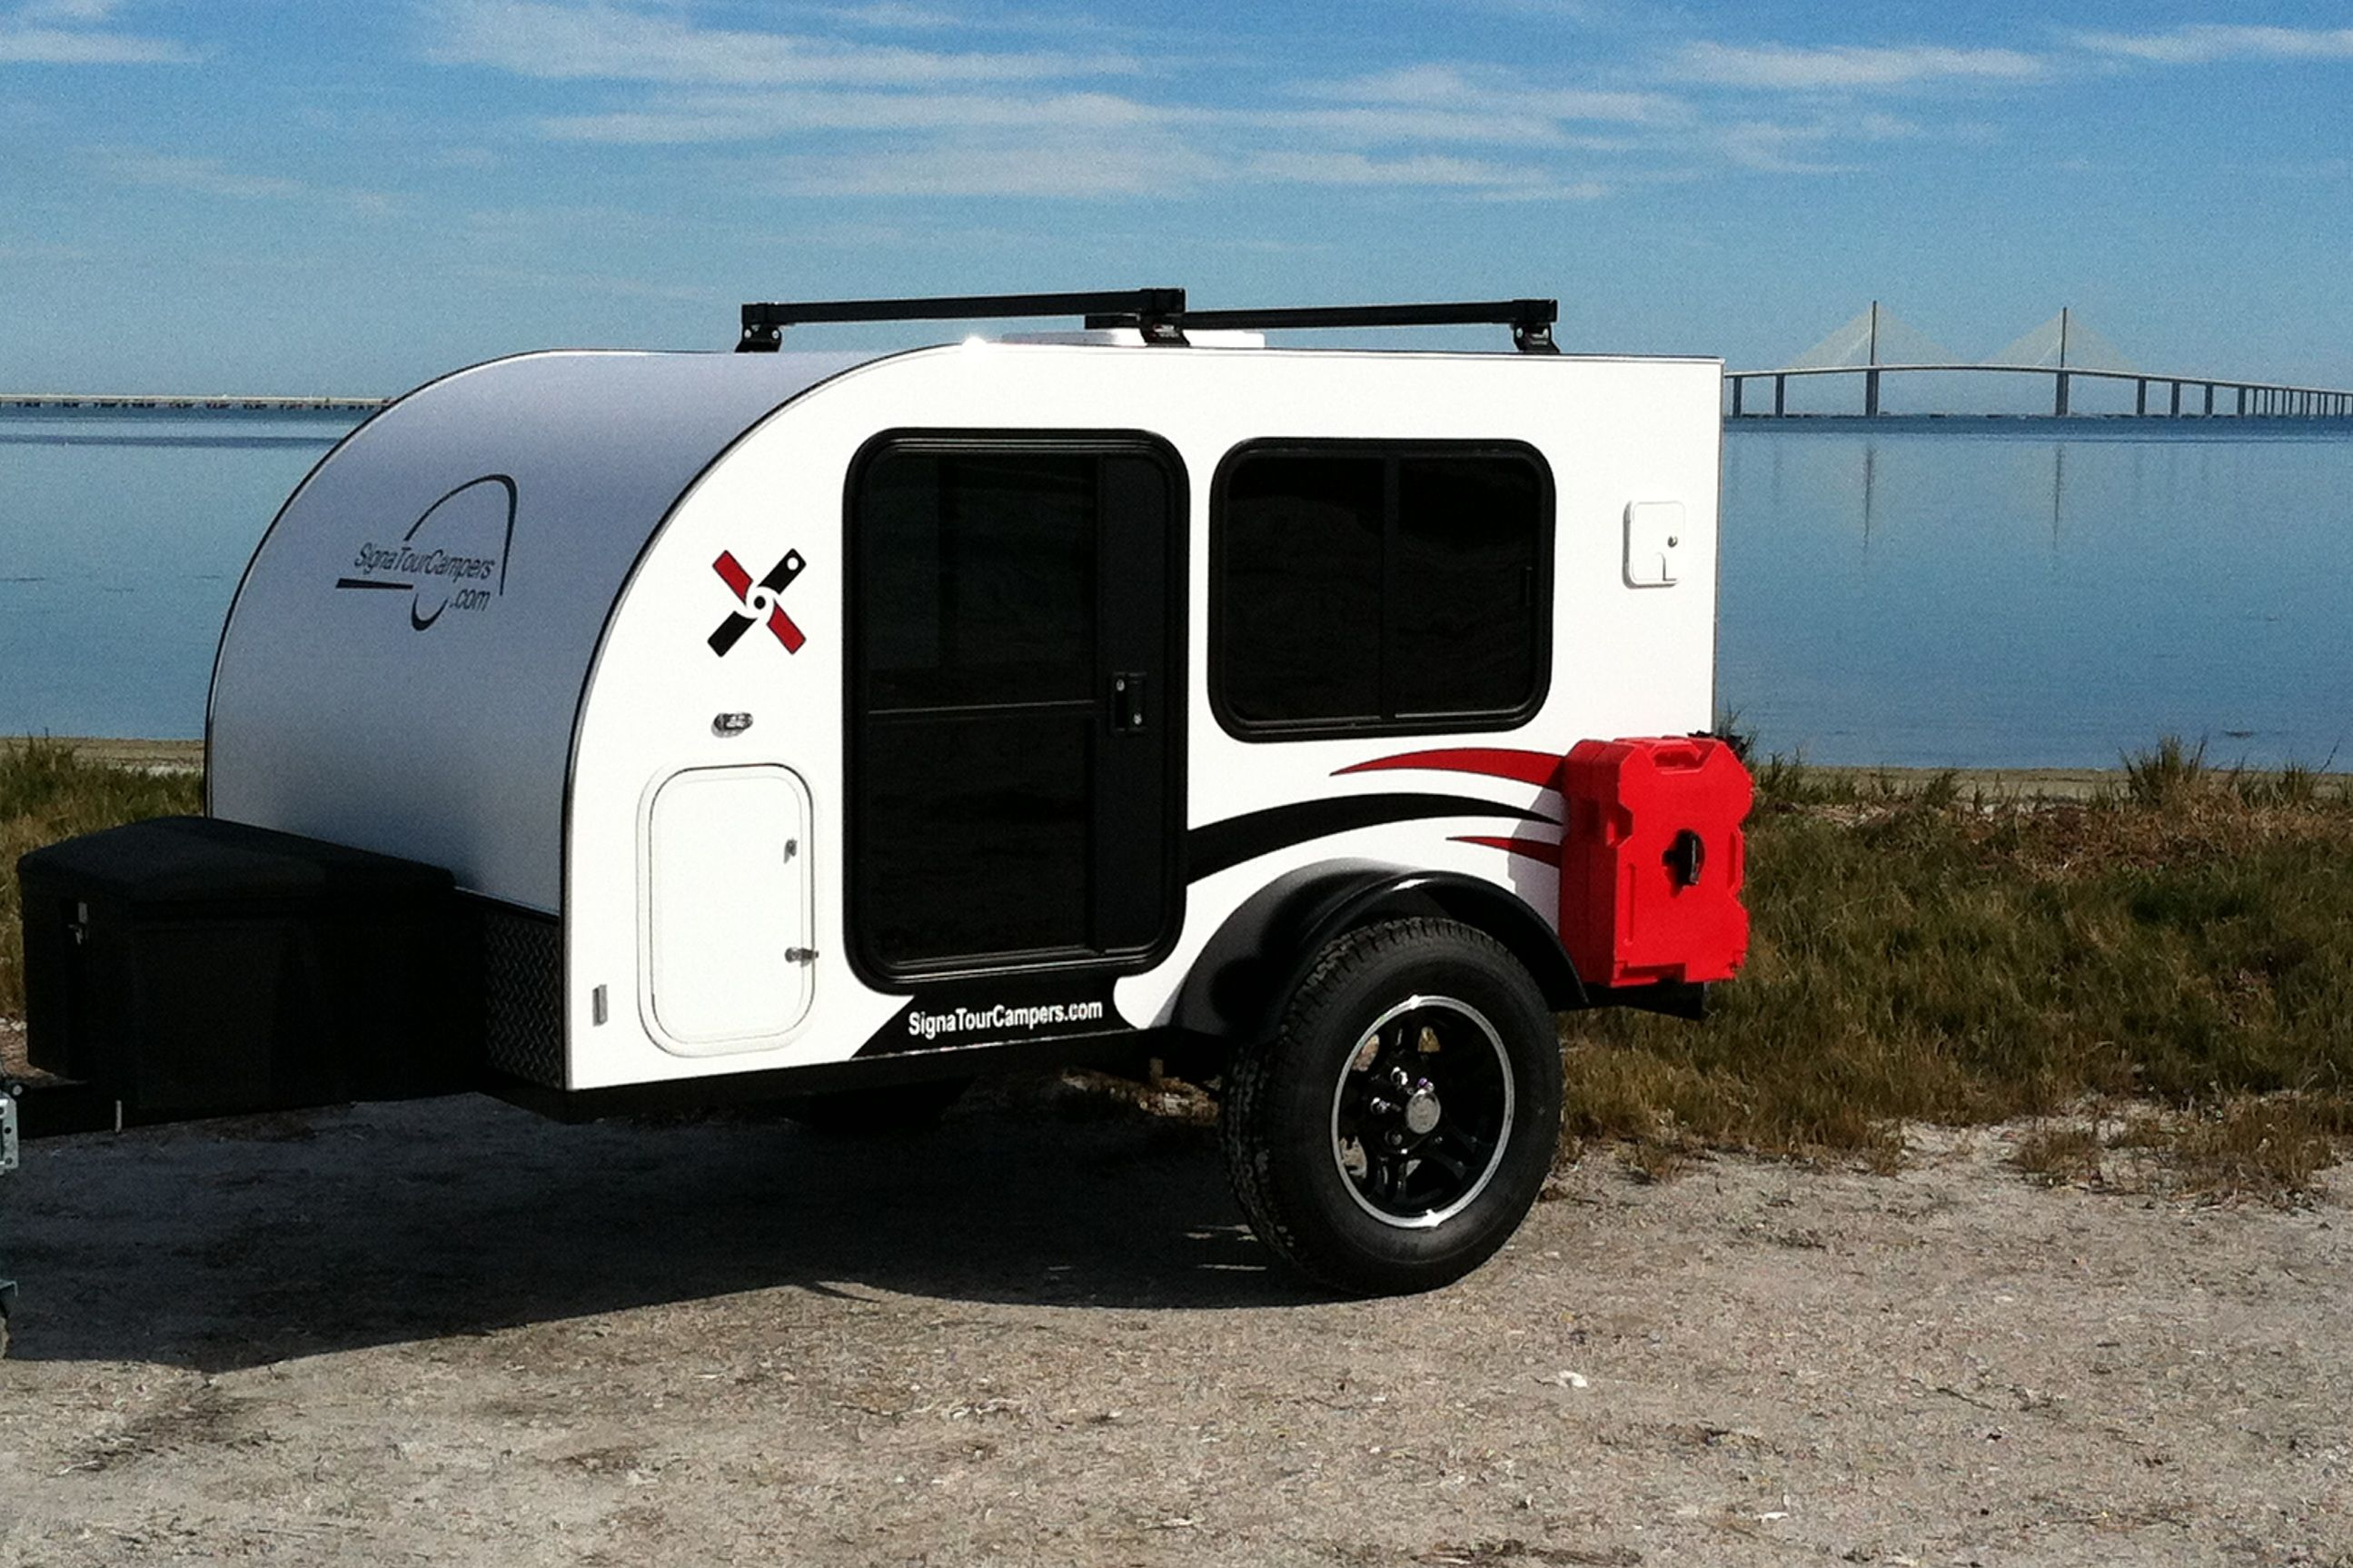 The Rockledge is SignaTour Campers off road teardrop camper and features a standard roof rack and front cargo box.  The Rotopax gas and storage cans are simple options that add to the functionality of this great camper.  Weighs only 1,000 lbs.